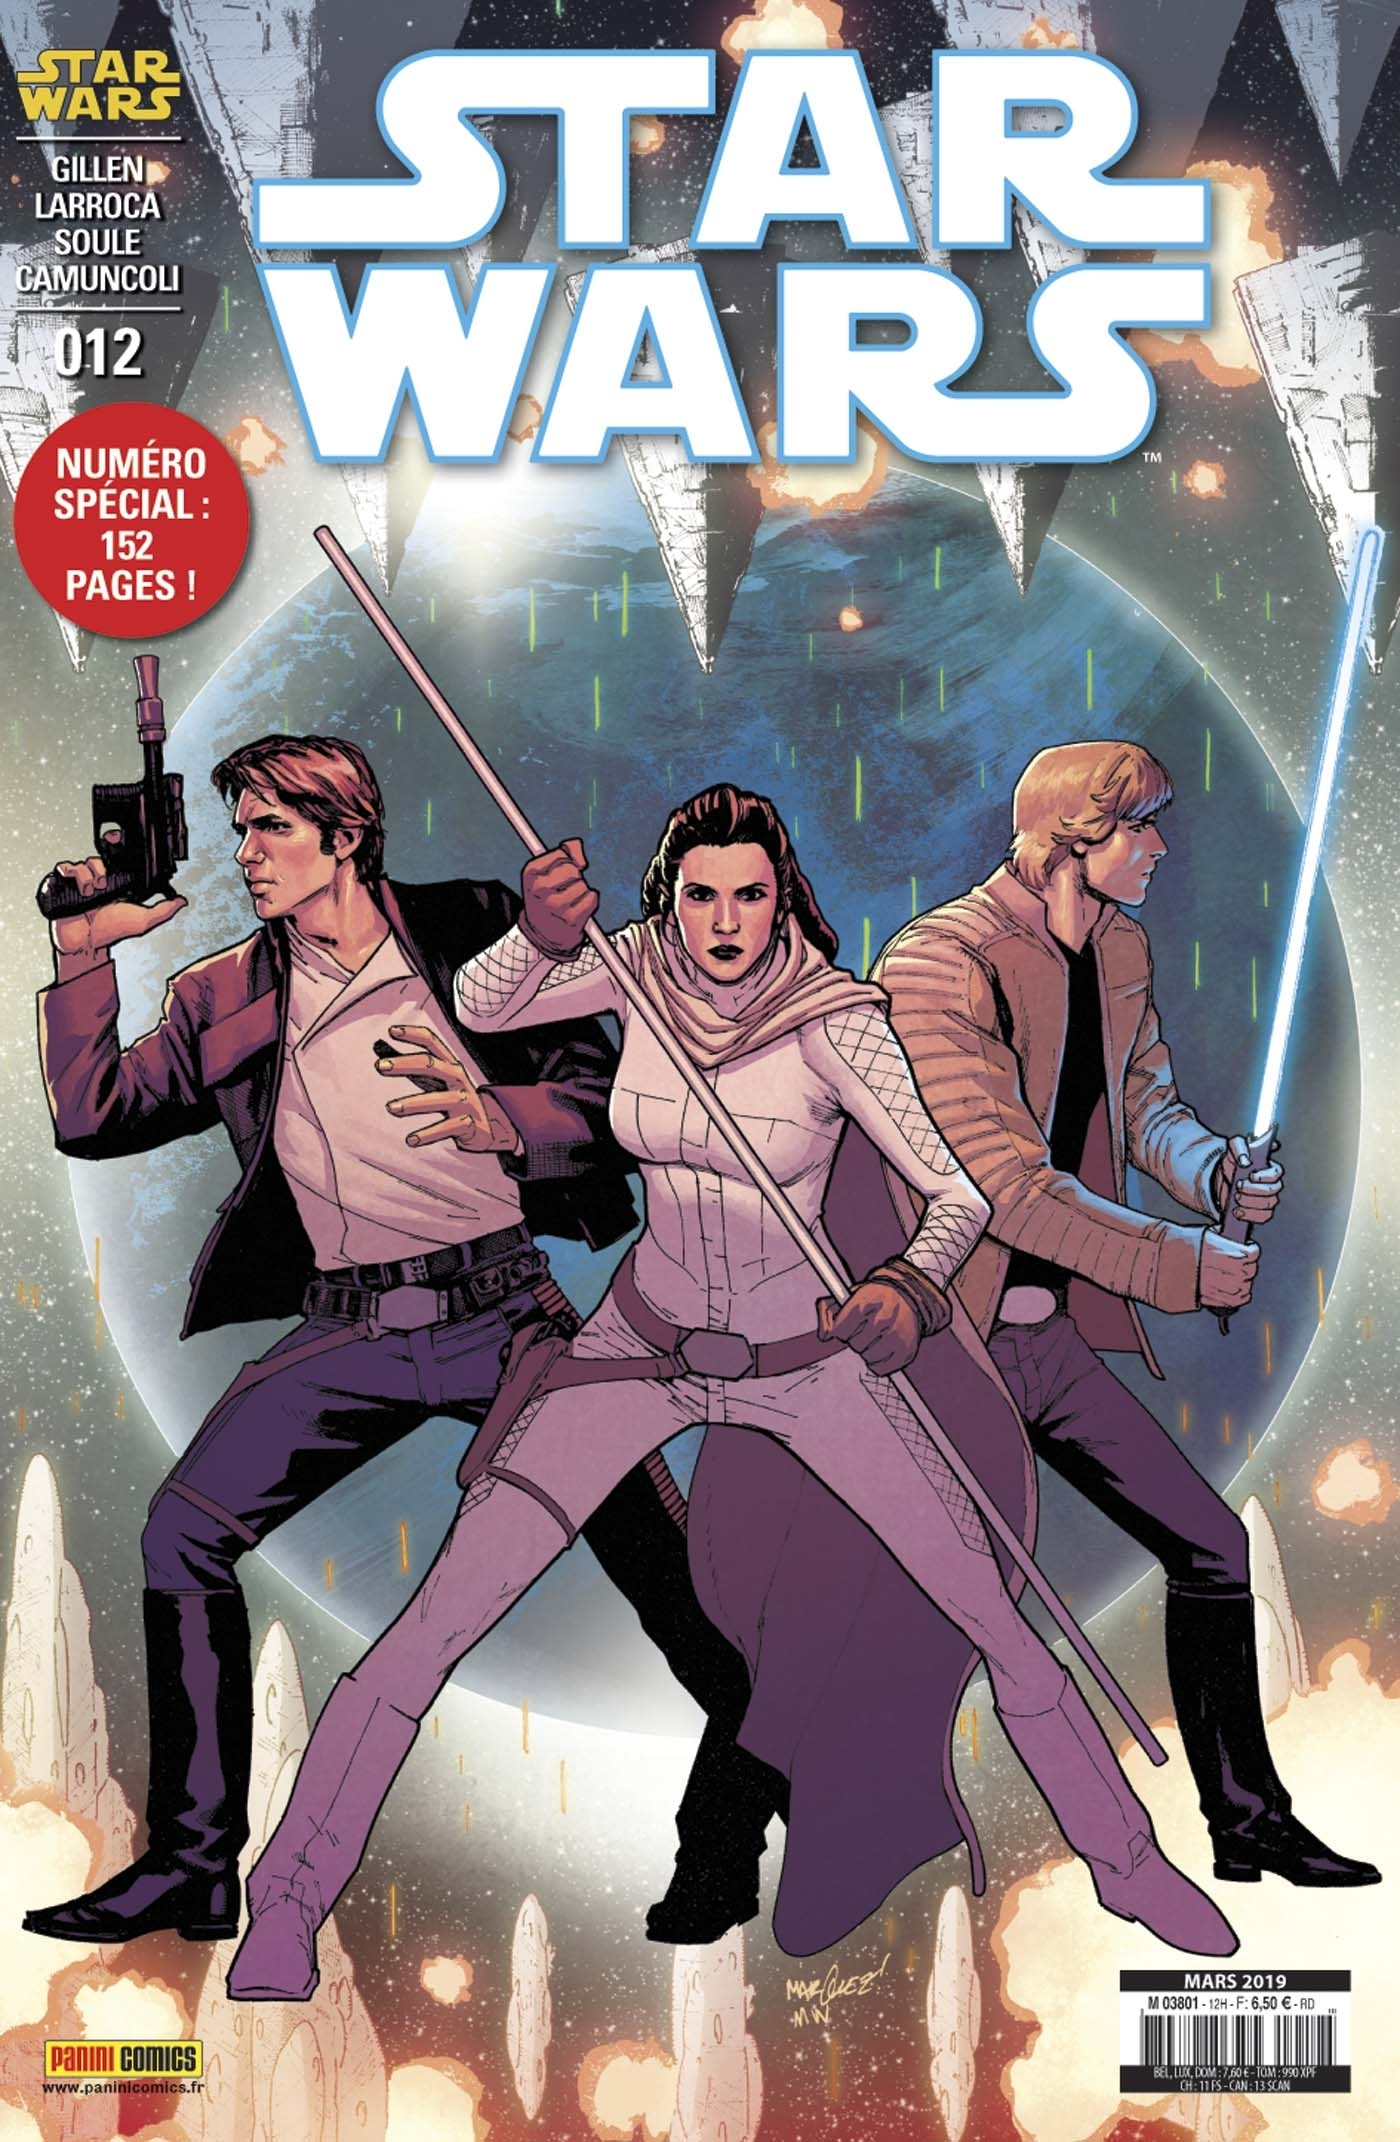 STAR WARS N 12 (COUVERTURE 1/2)